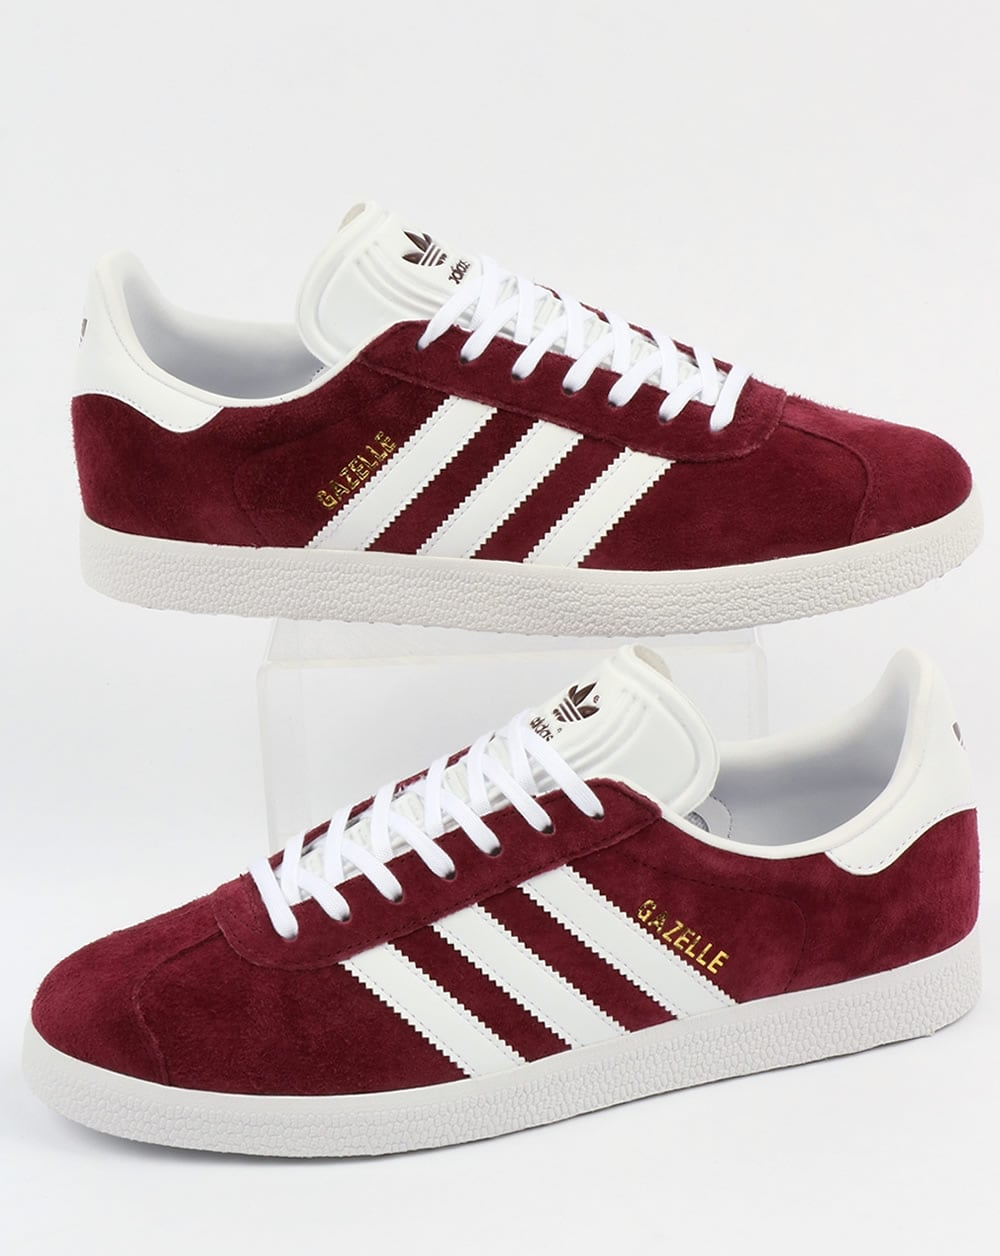 adidas campus e gazelle differenze